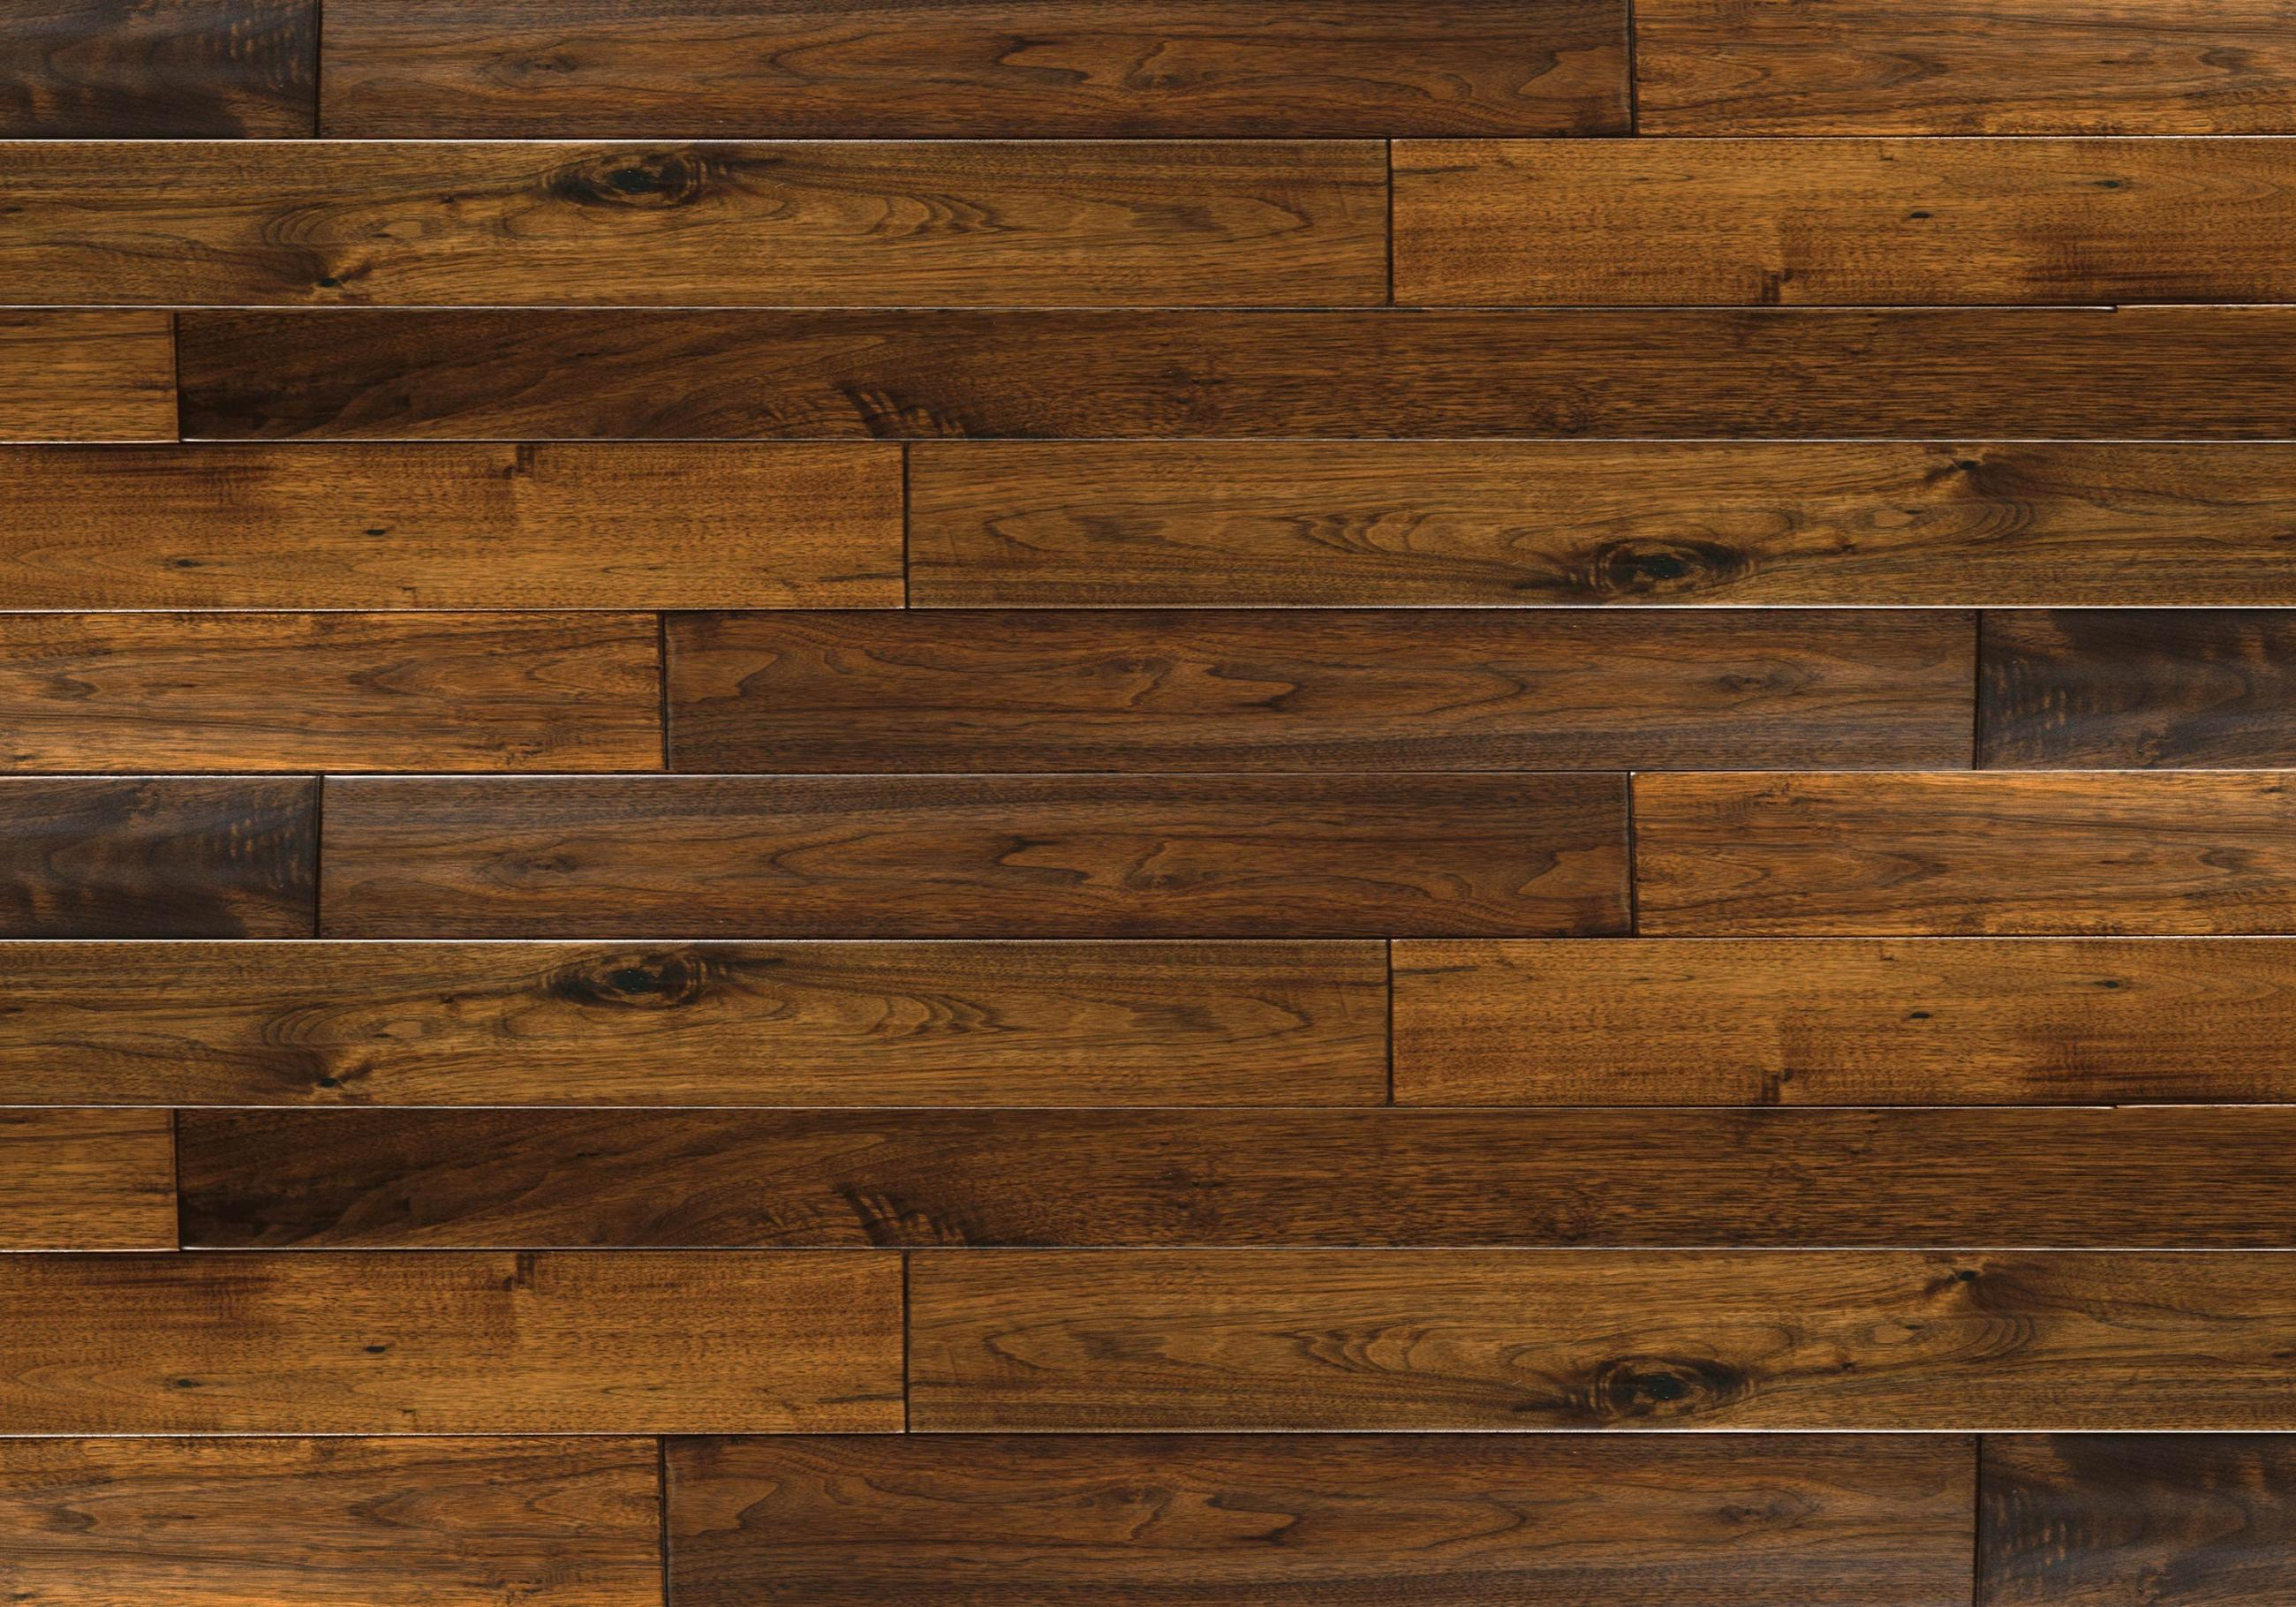 hardwood floors. Perfect Hardwood Throughout Hardwood Floors